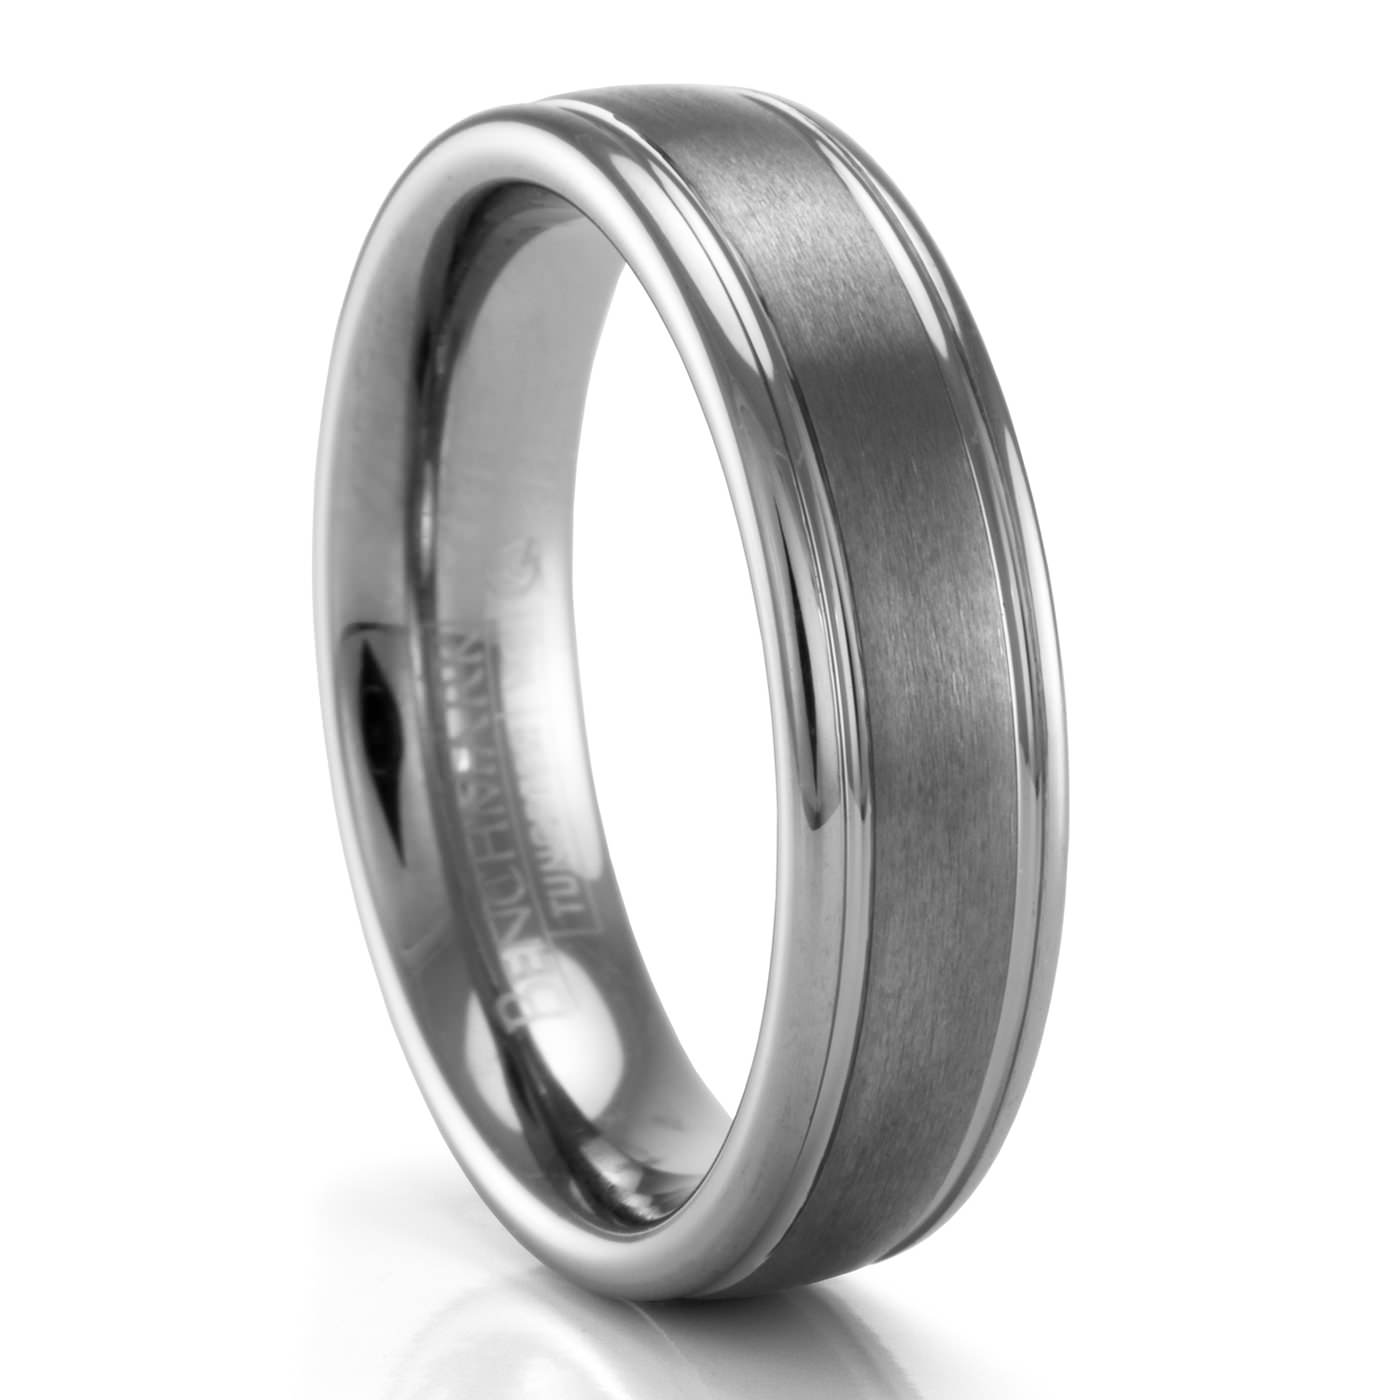 Inspirational Mens Wedding Ring too Big